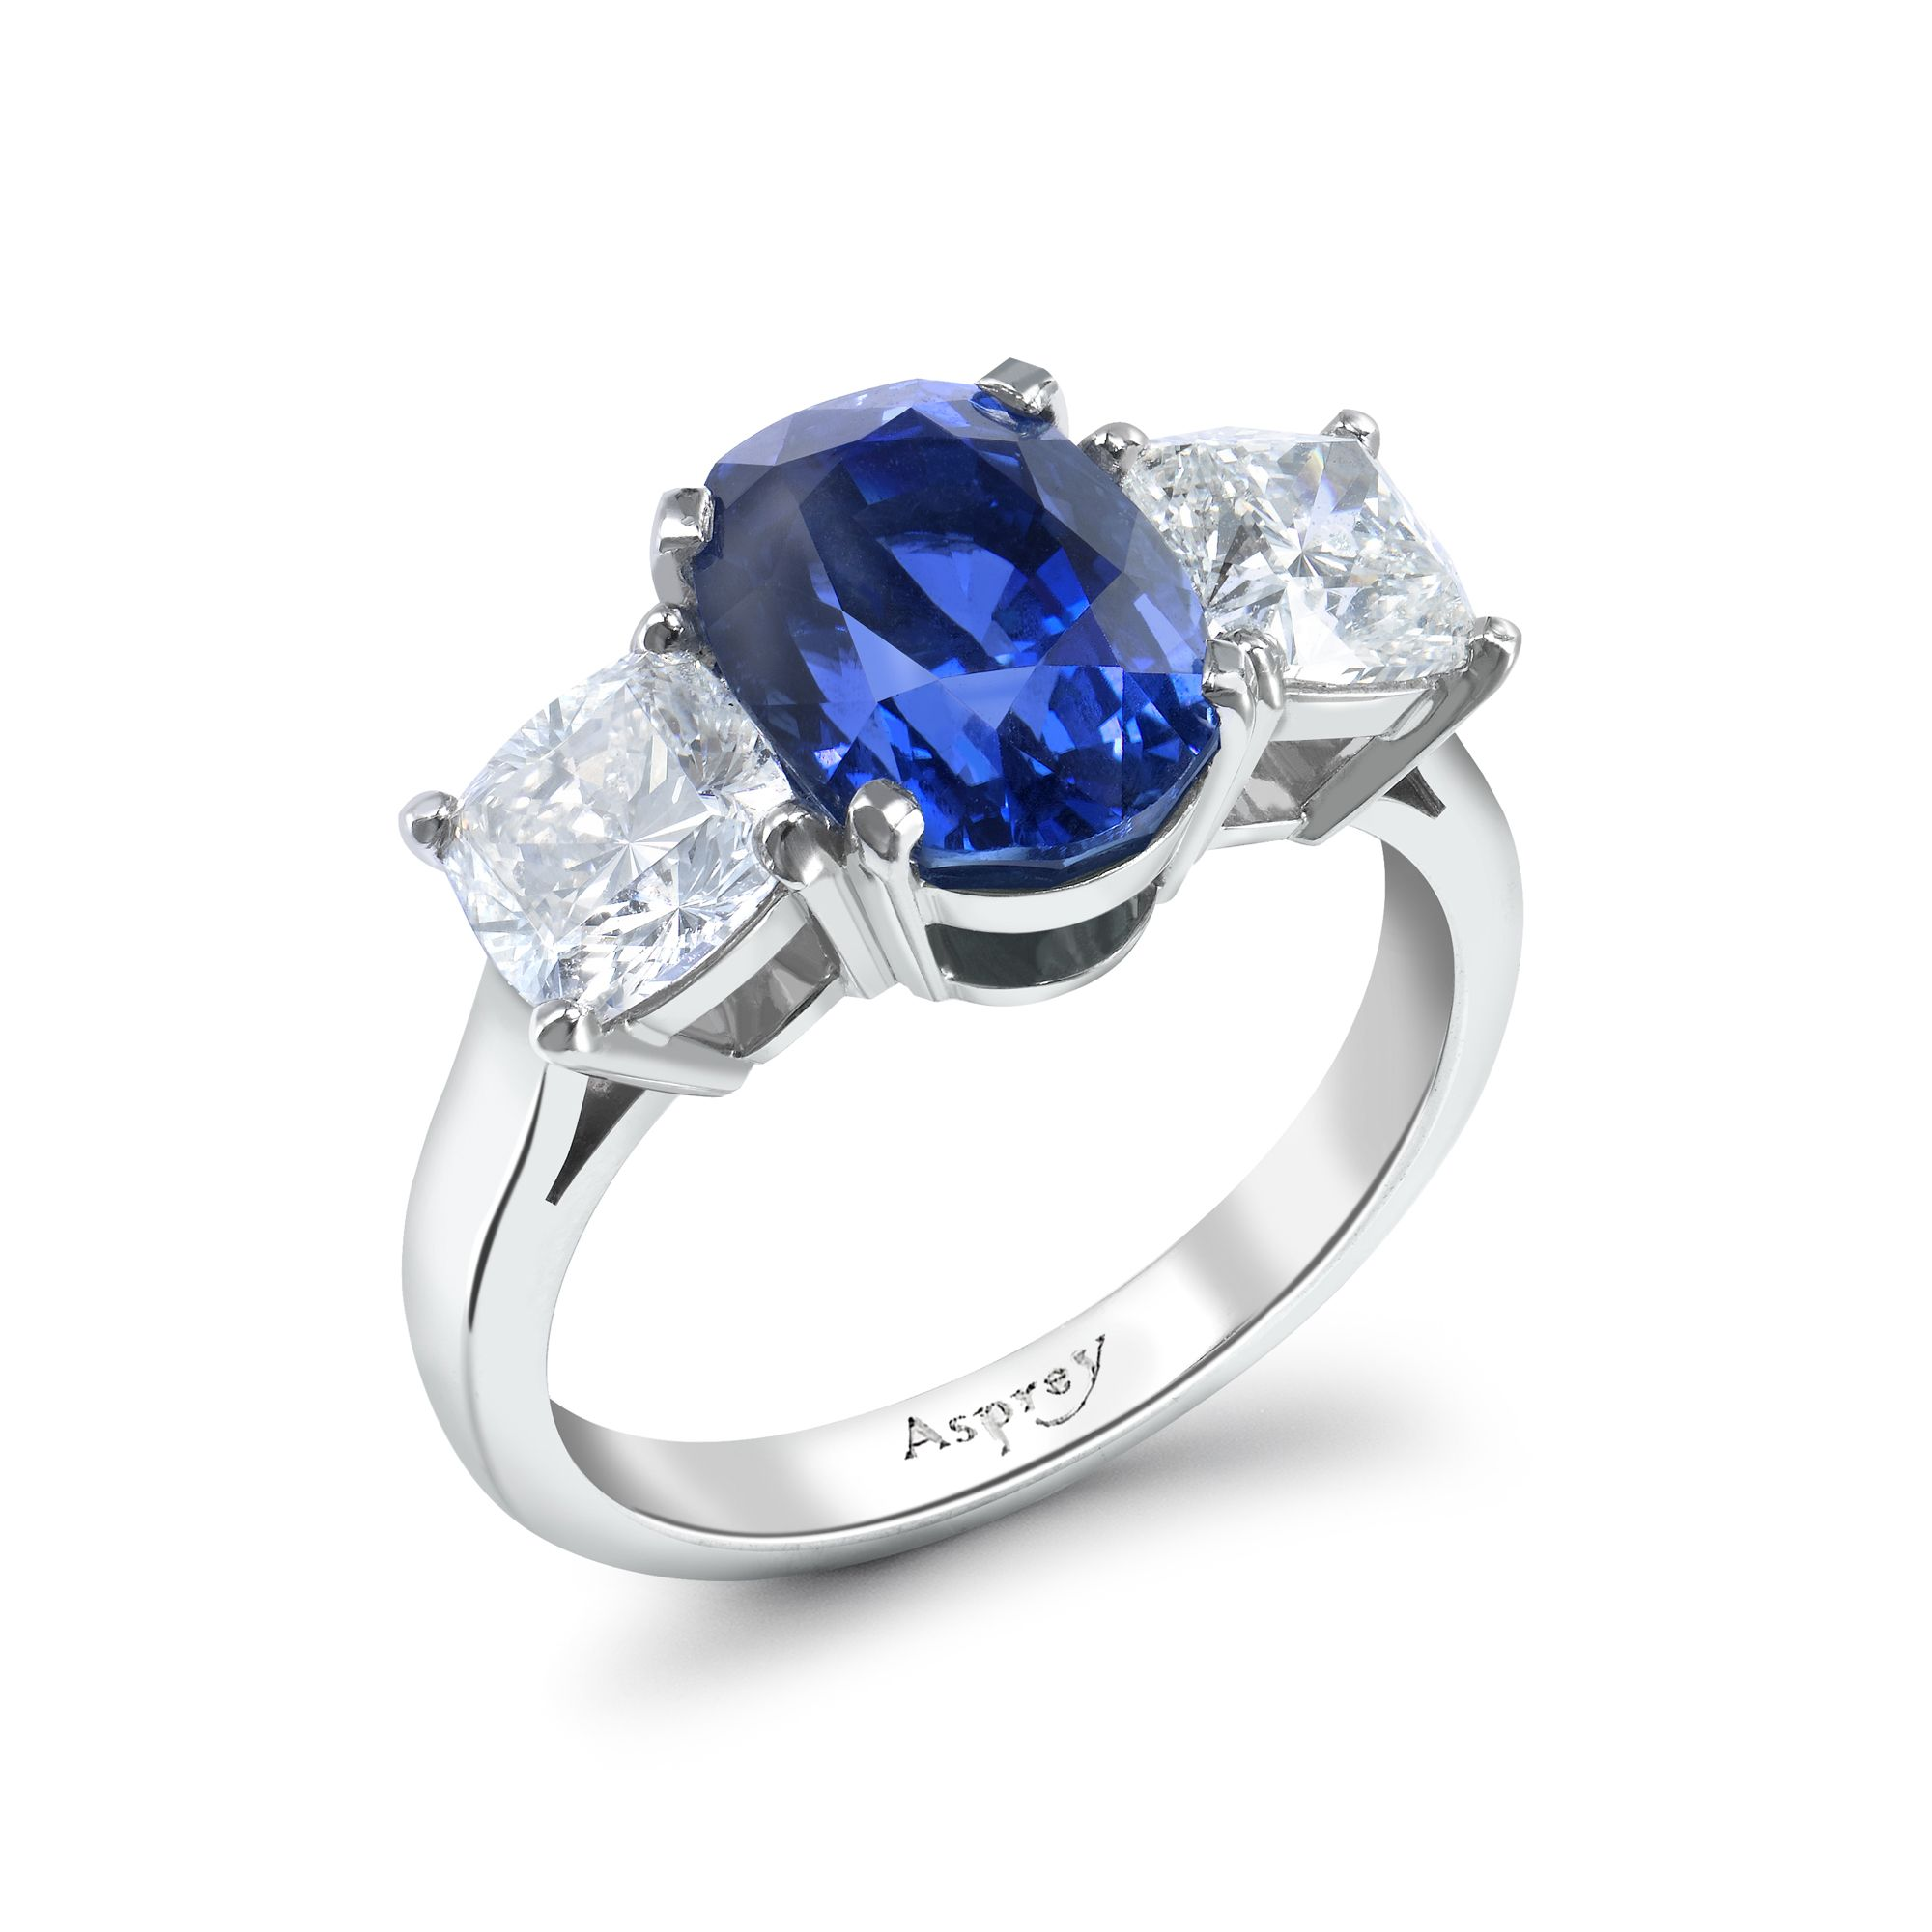 band o nigel eternity sapphire wedding or diamond dublin facebook double unusual bands ring engagement product reilly mayo halo